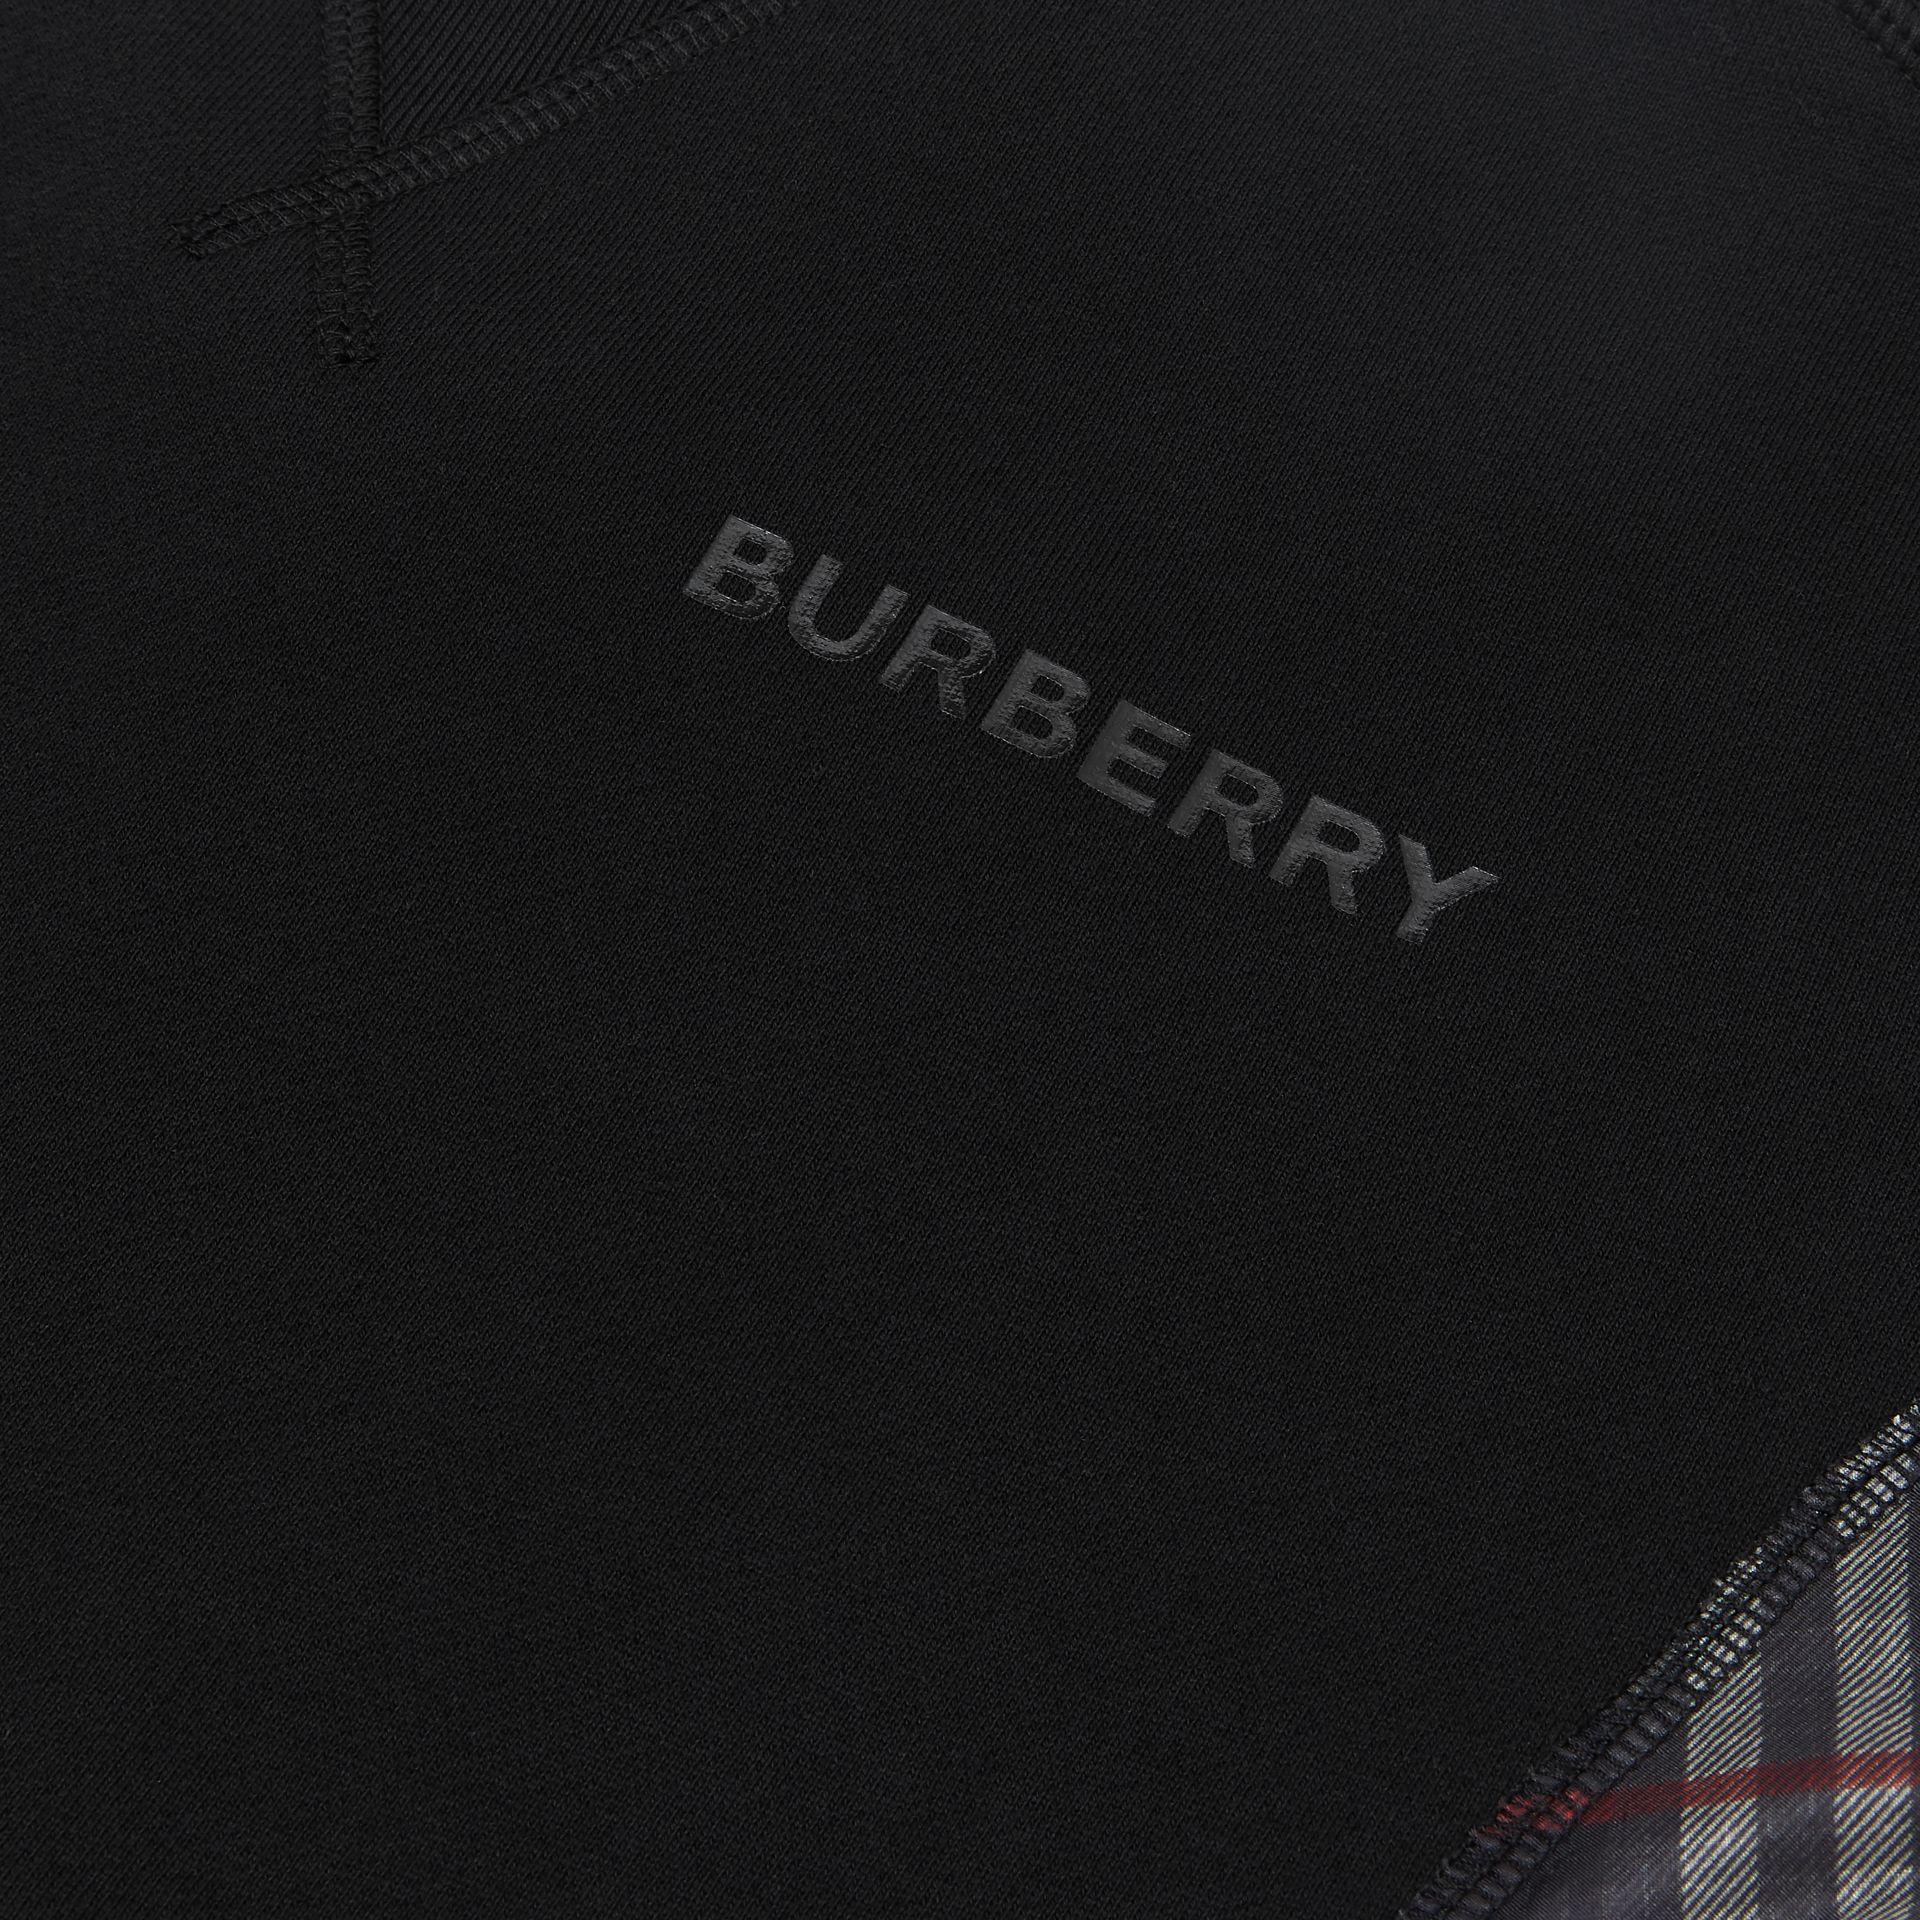 Sweat-shirt en coton avec Vintage check (Noir) | Burberry - photo de la galerie 1